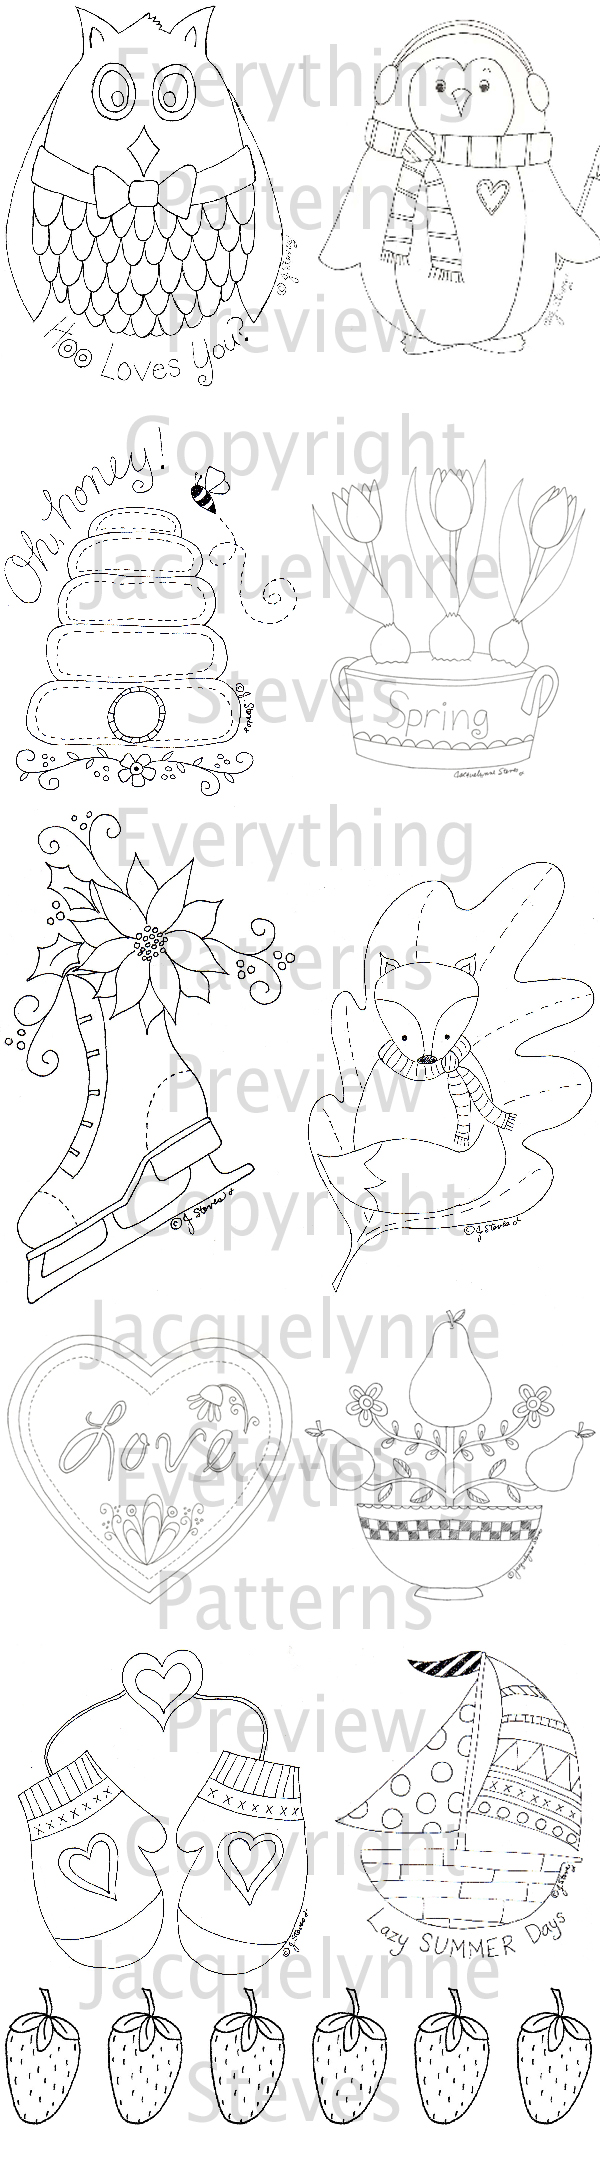 preview-everythingpatternsebook-jacquelynne_steves